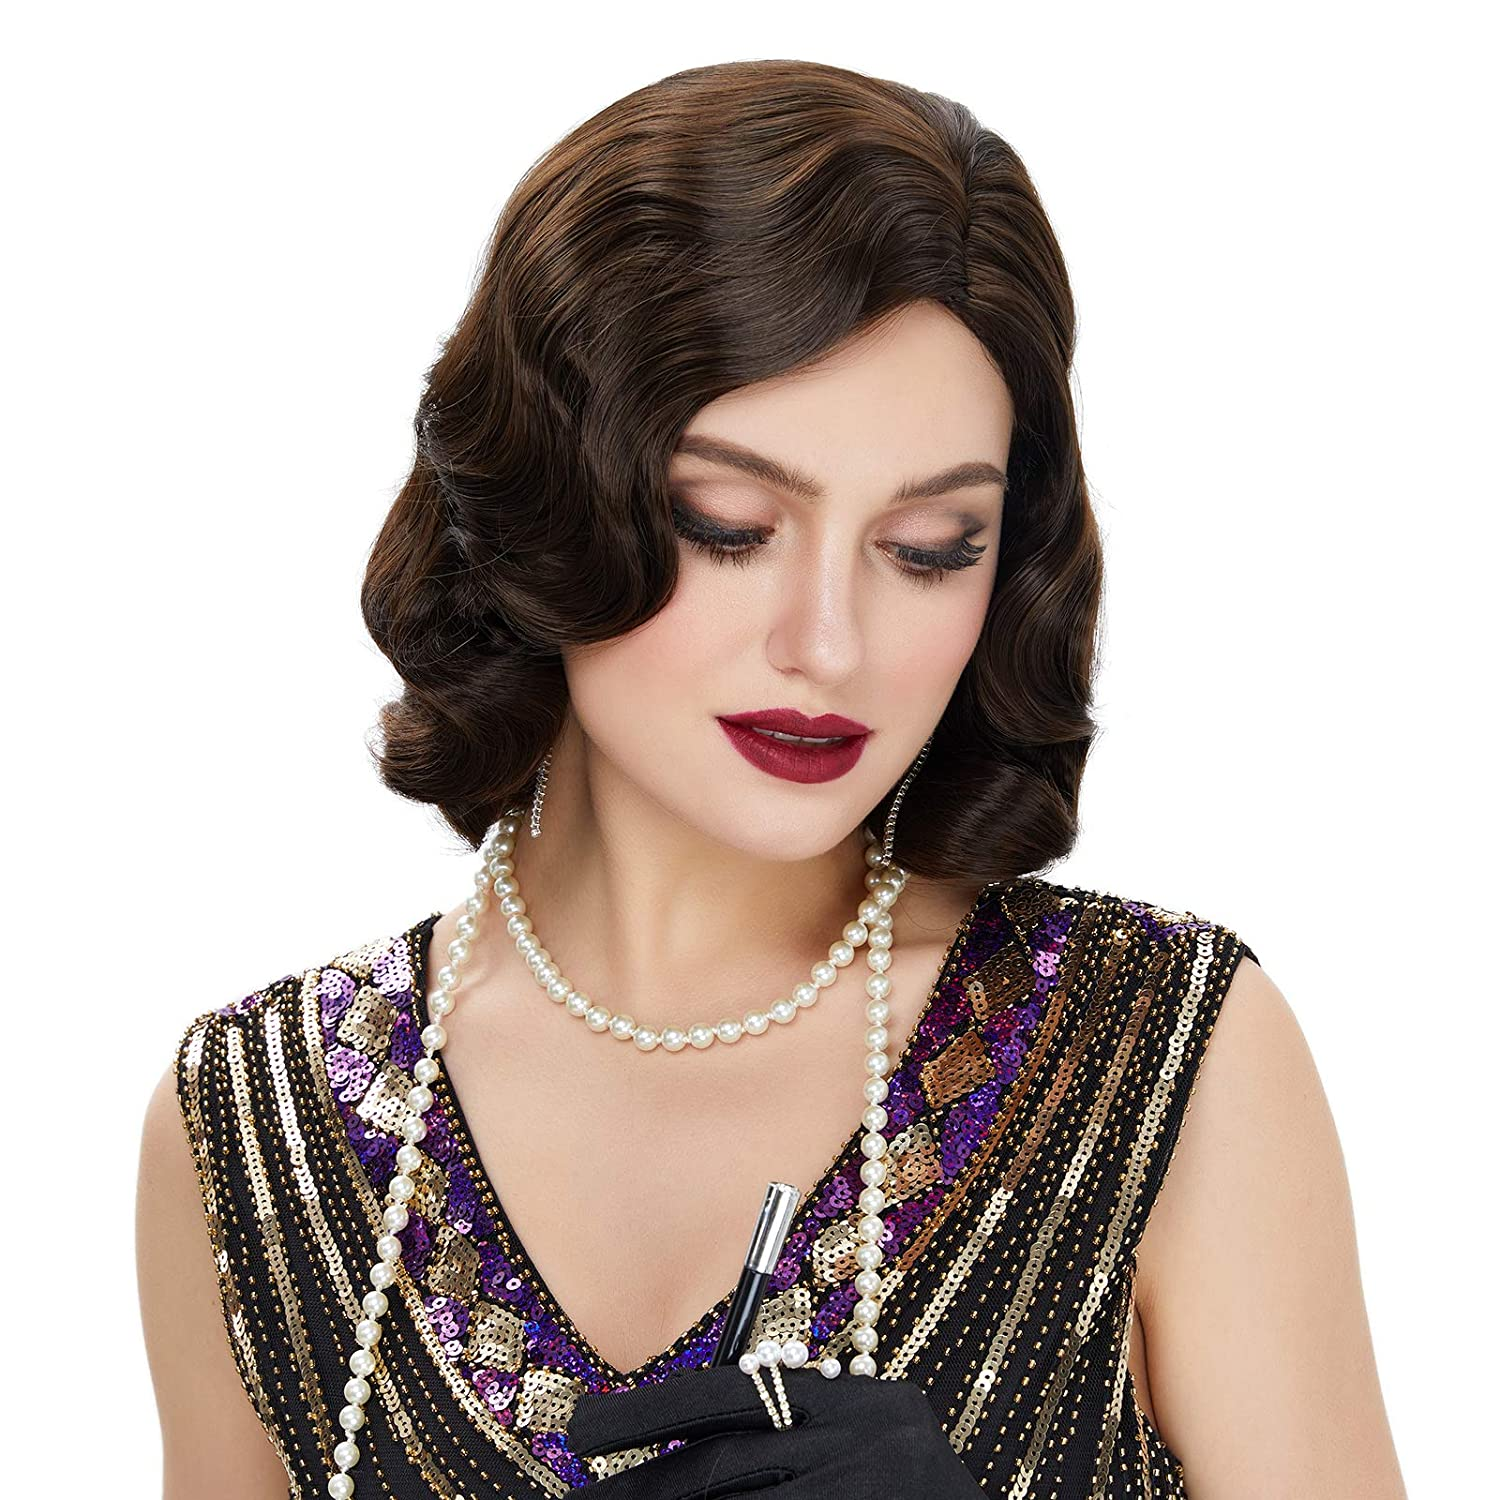 STfantasy Finger Wave Wig 1920s Time sale Retro Synt Long Length Ranking TOP15 Curly Mid